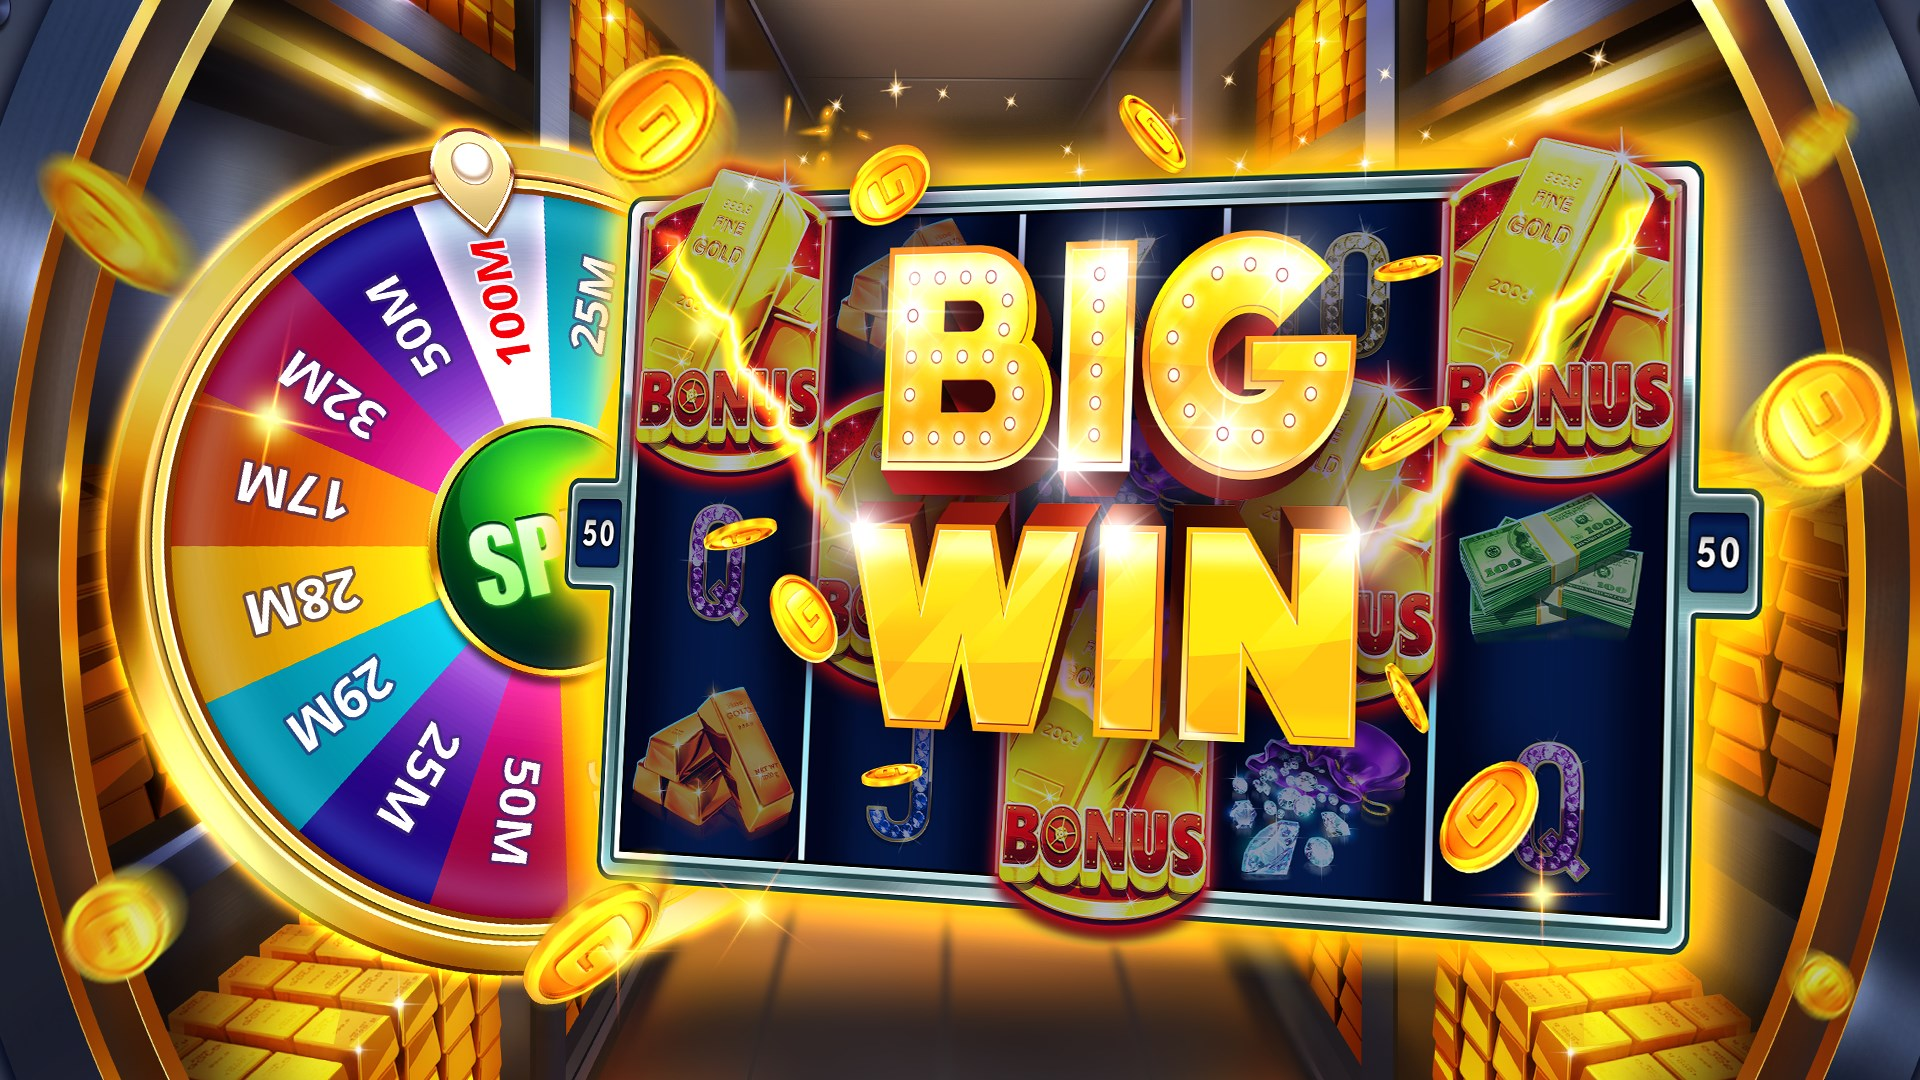 Dragon slot machine download free